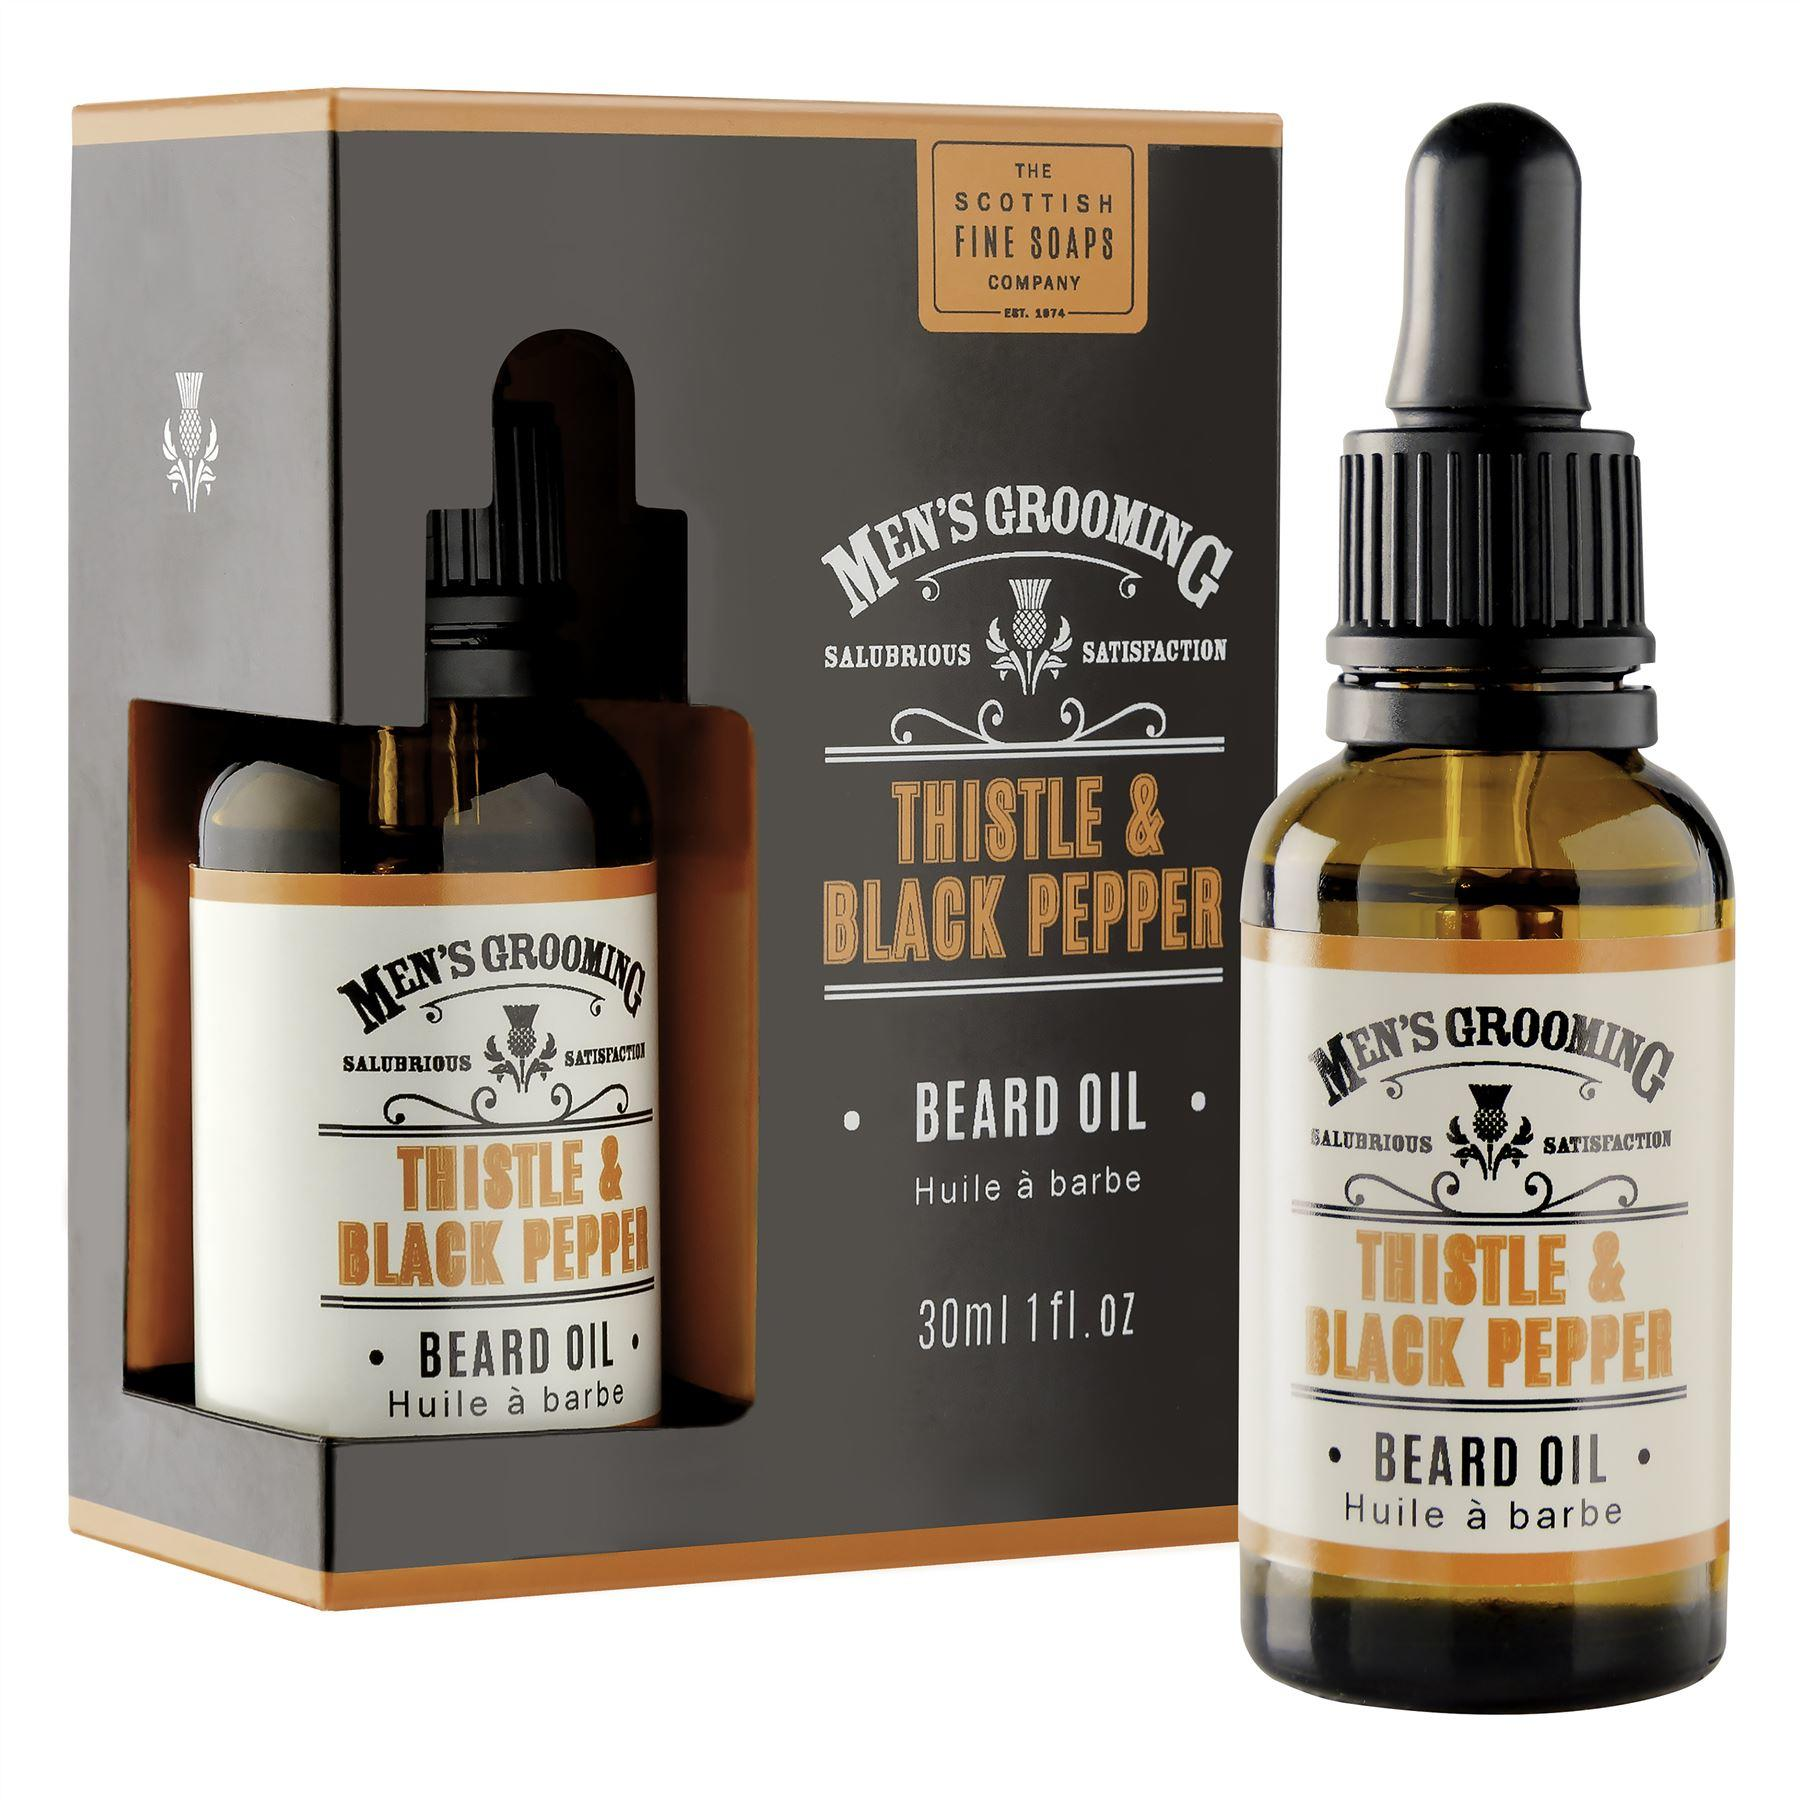 Scottish Fine Soaps Thistle & Black Pepper Beard Oil